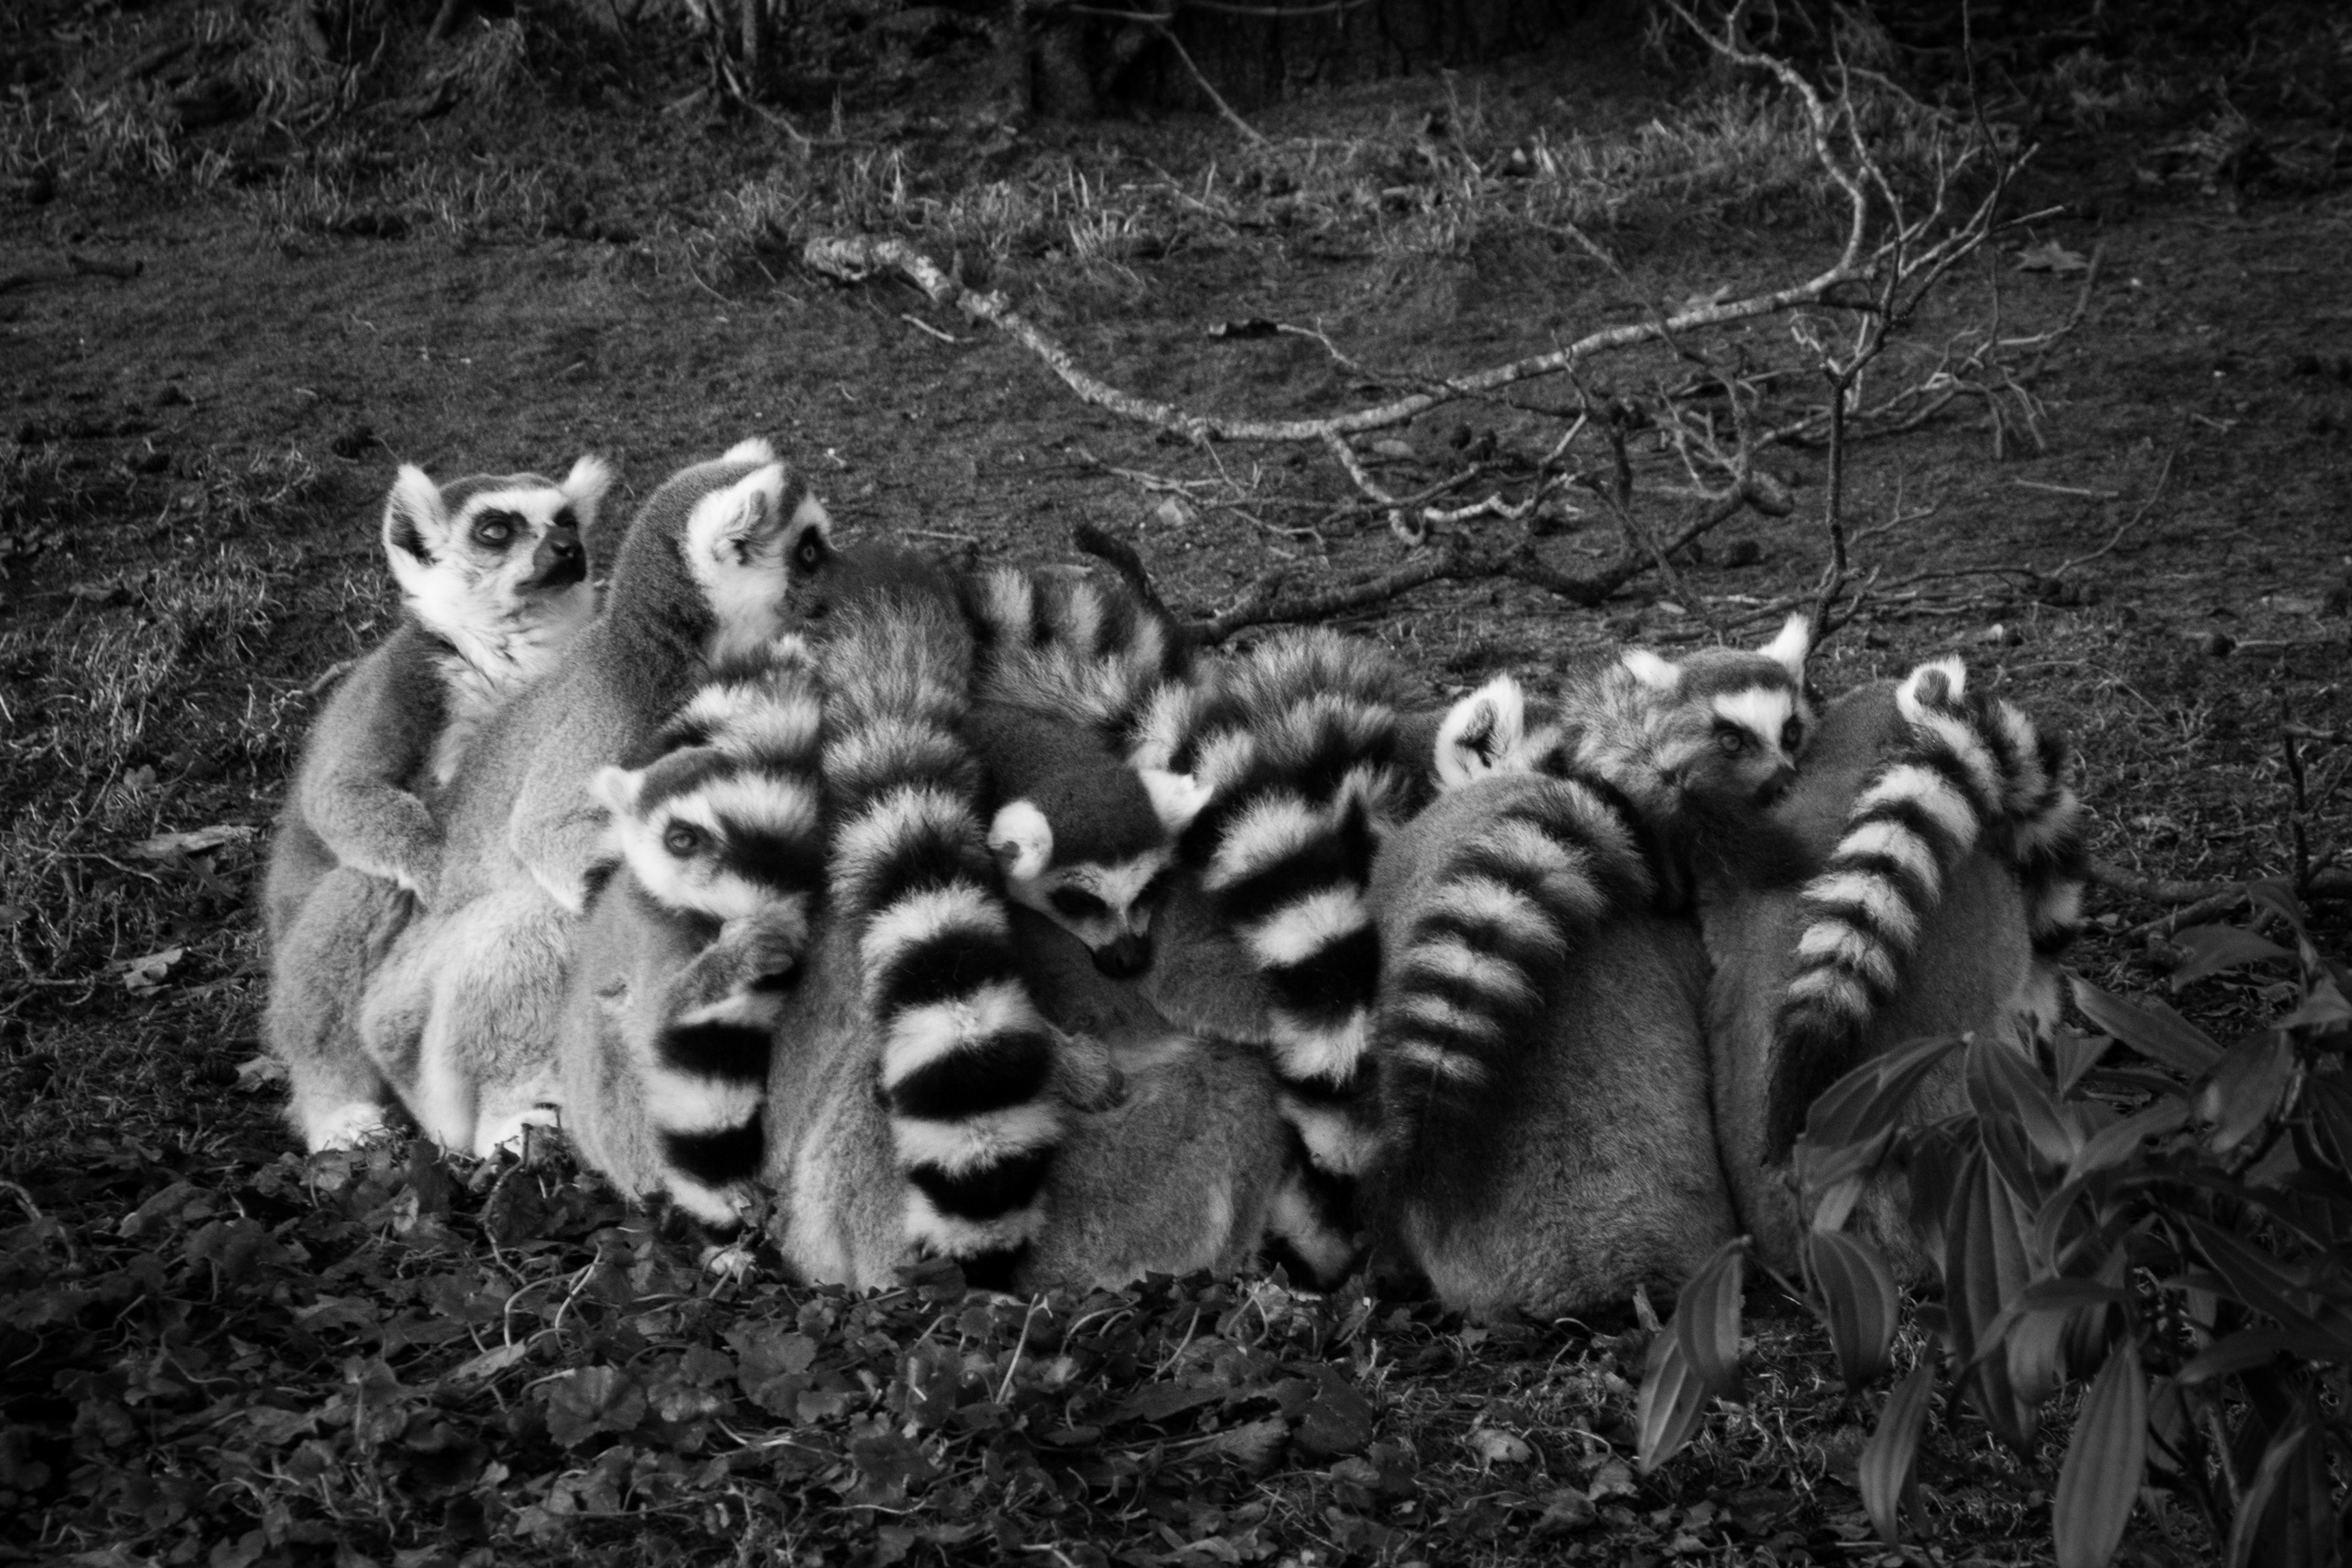 High Hd Wallpaper Download Gray Scale Of Lemur 183 Free Stock Photo